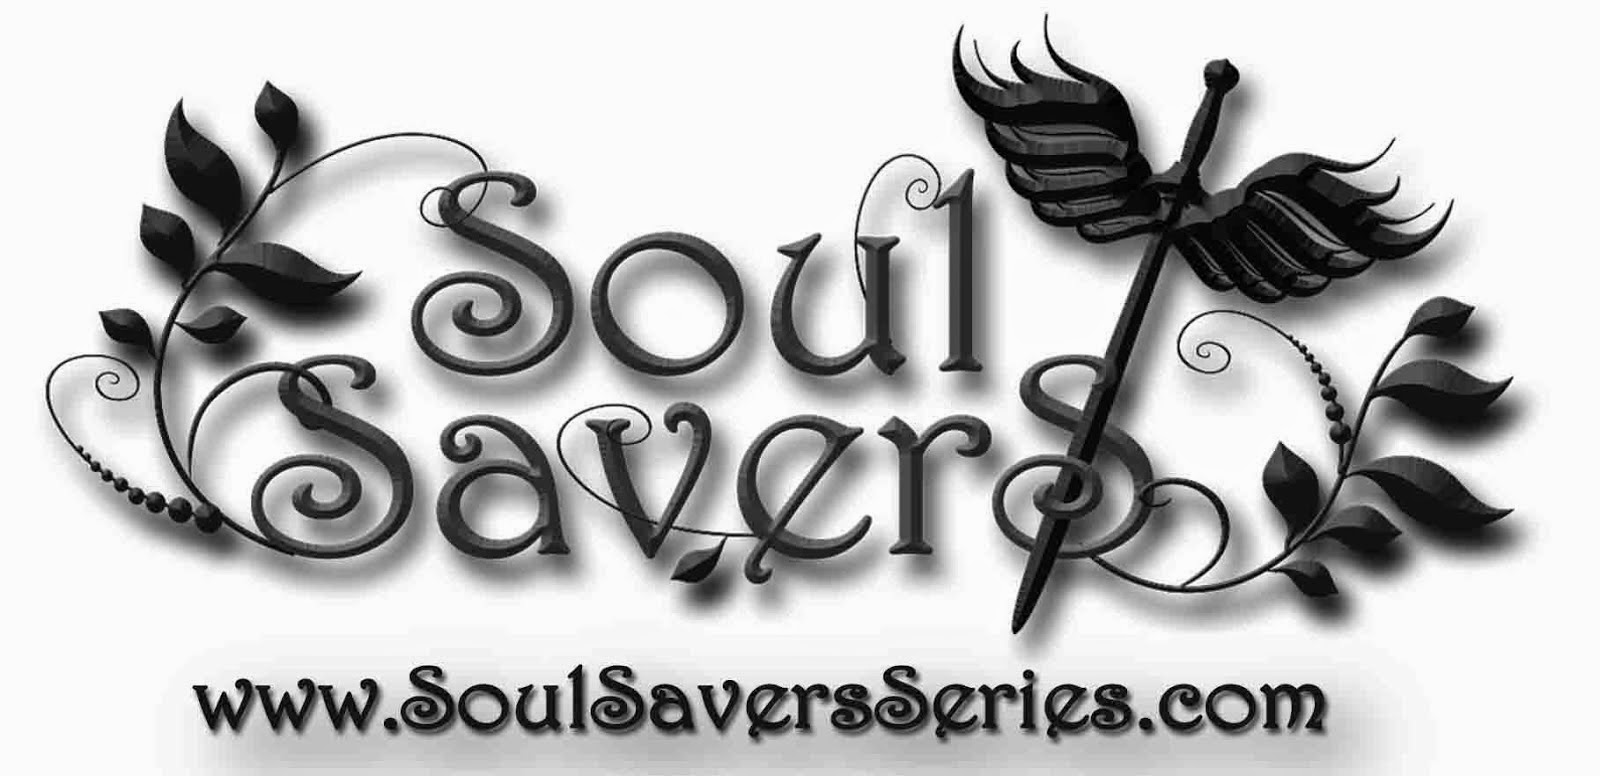 Visit the Soul Savers Site